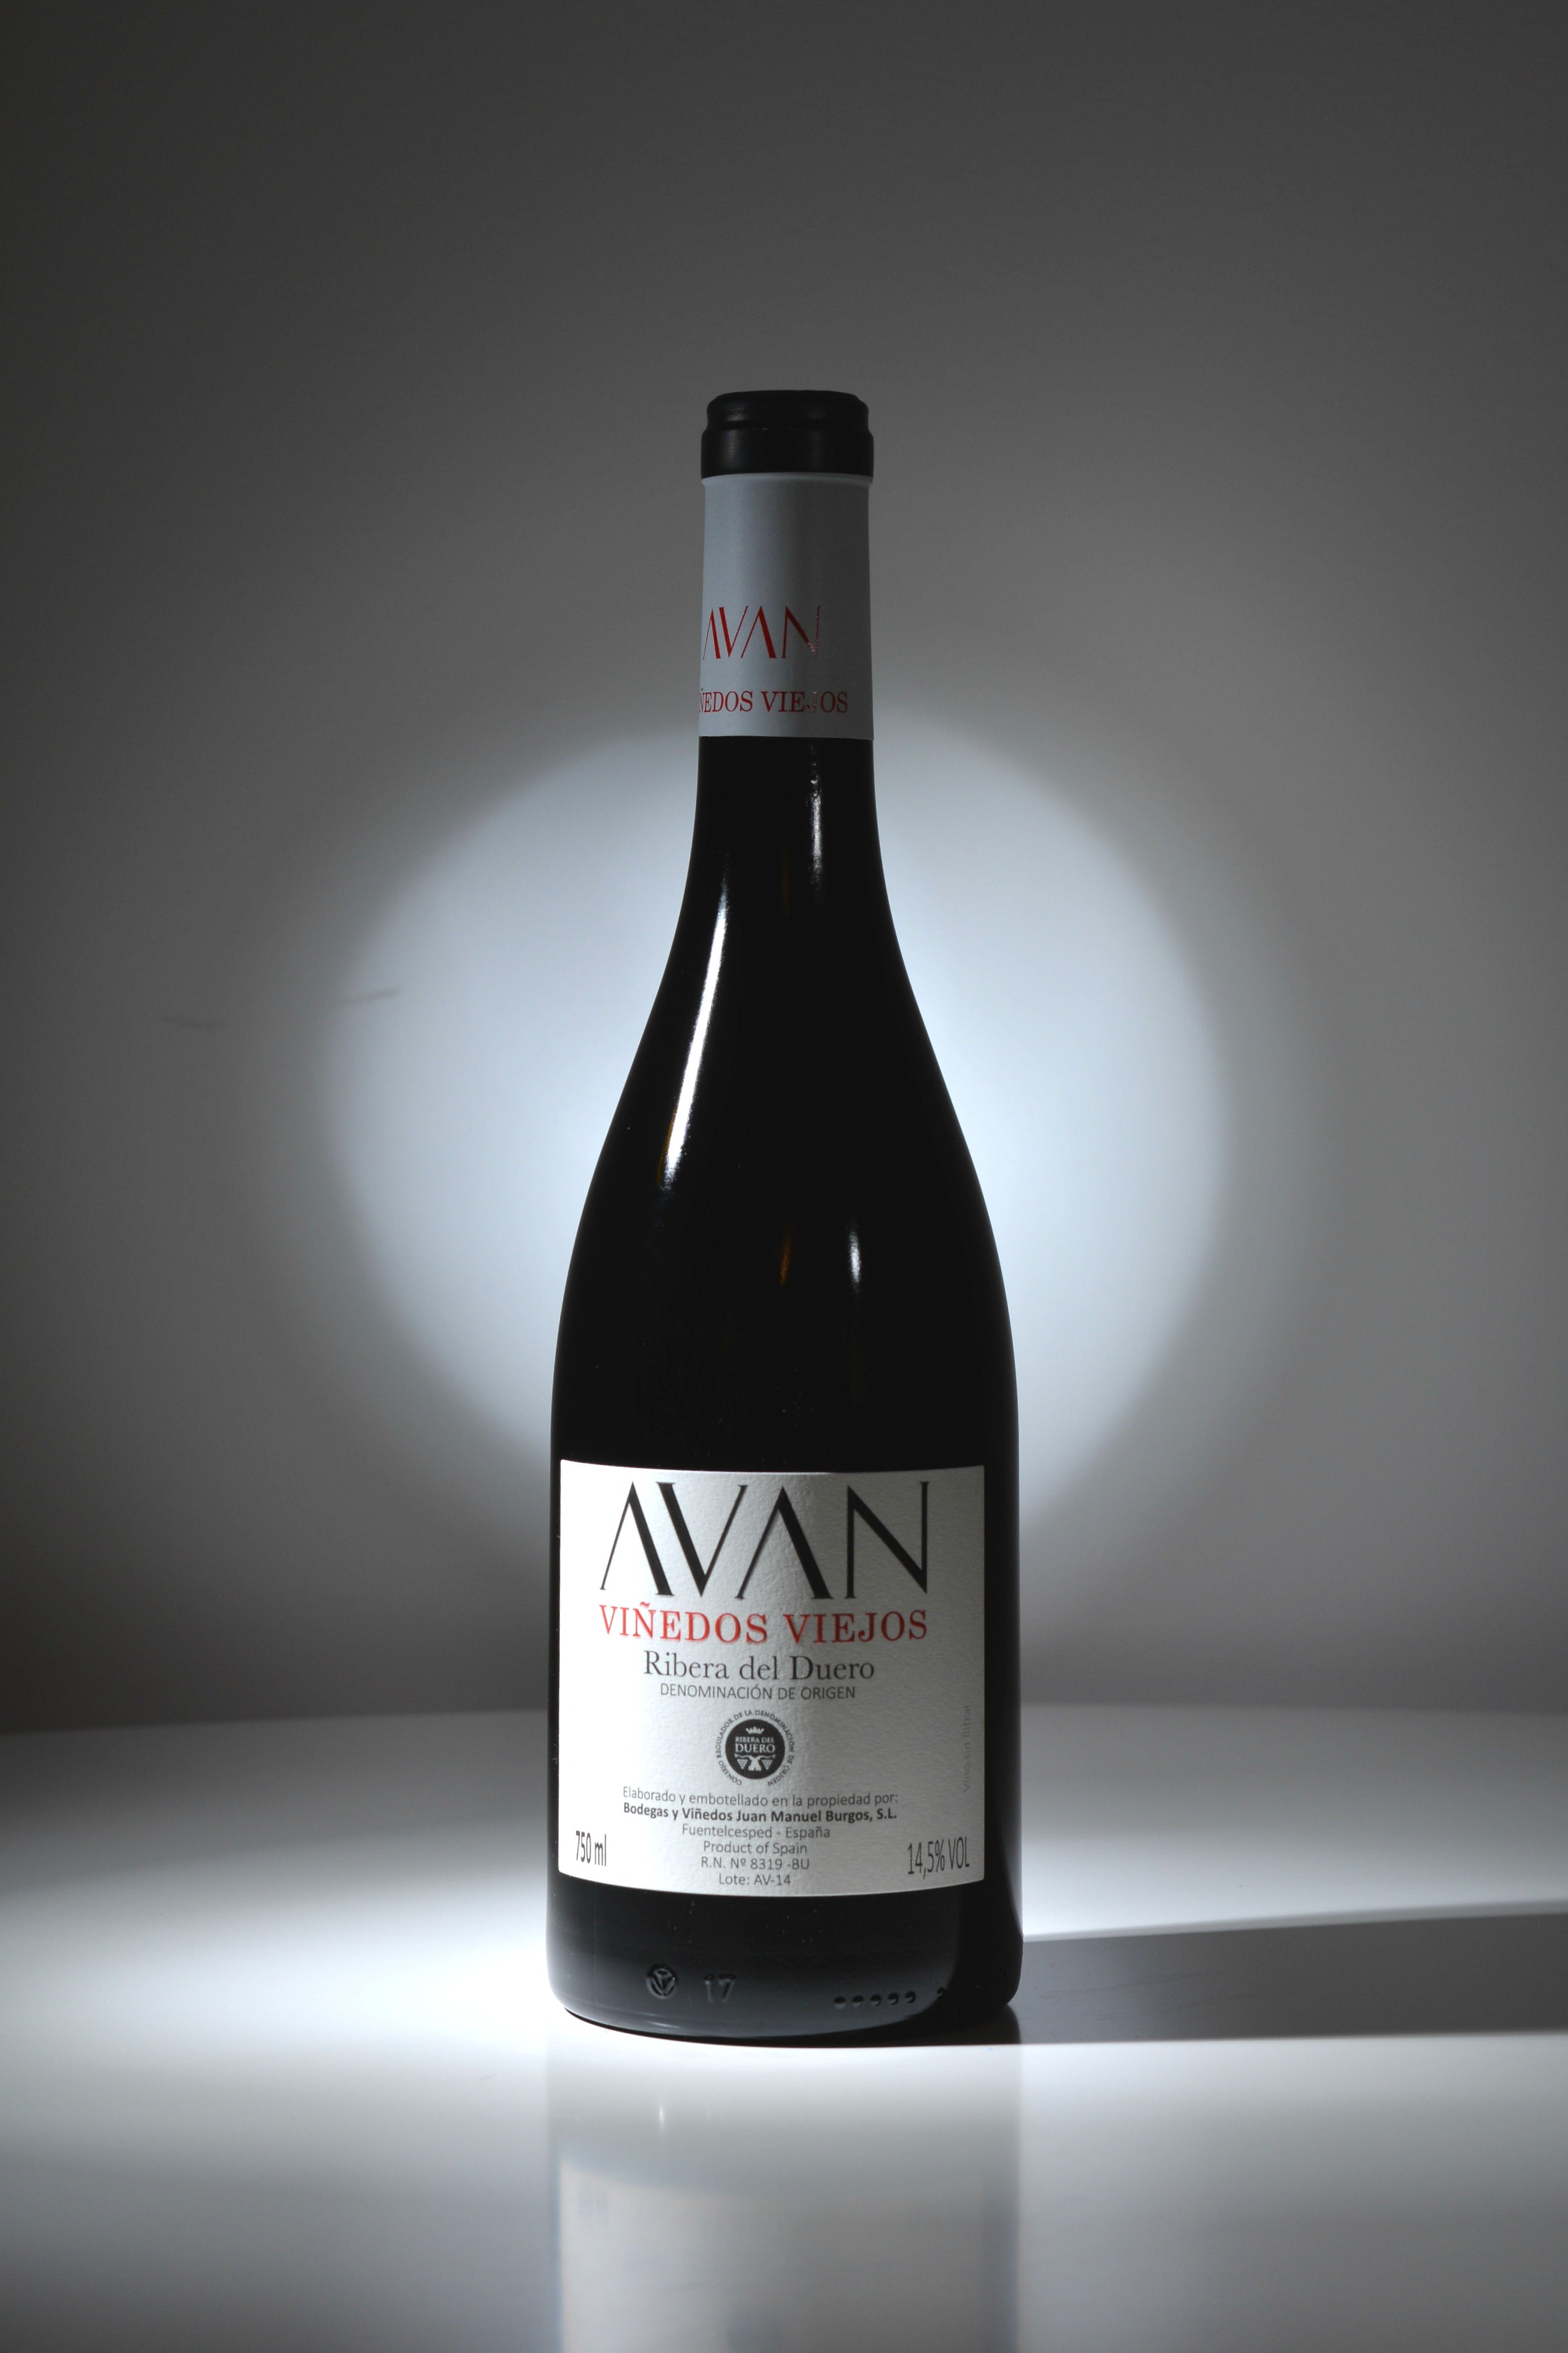 Avan Viñedos Viejos 2016 - The Royal Bottle